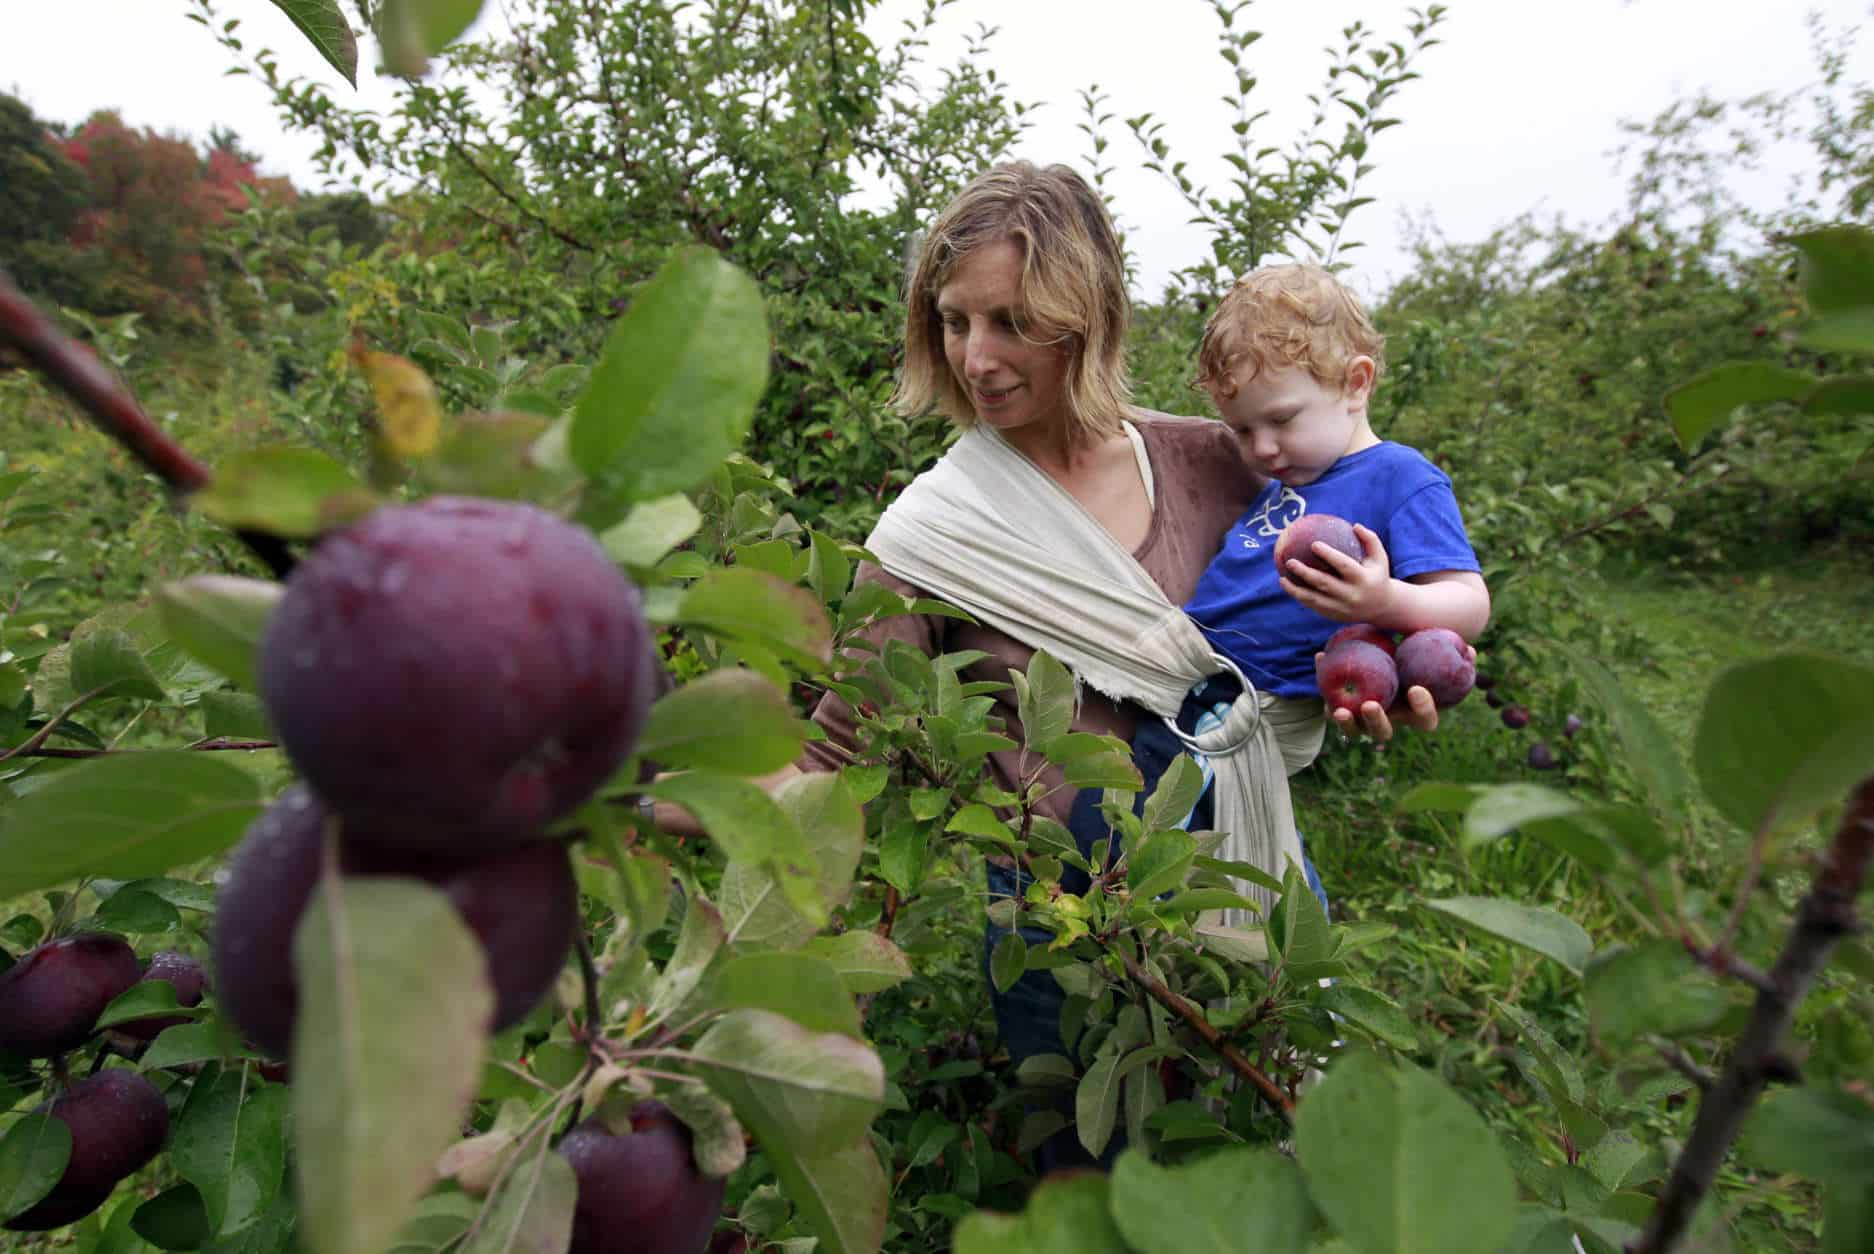 Hilary Graham, of Arlington, Mass., center, picks apples while holding her two-year-old son Christopher at Carlson Orchards, in Harvard, Mass., Tuesday, Oct. 2, 2012.  Many orchards across New England are facing shortages after a warm spring and late April freeze killed early blossoms. (AP Photo/Steven Senne)